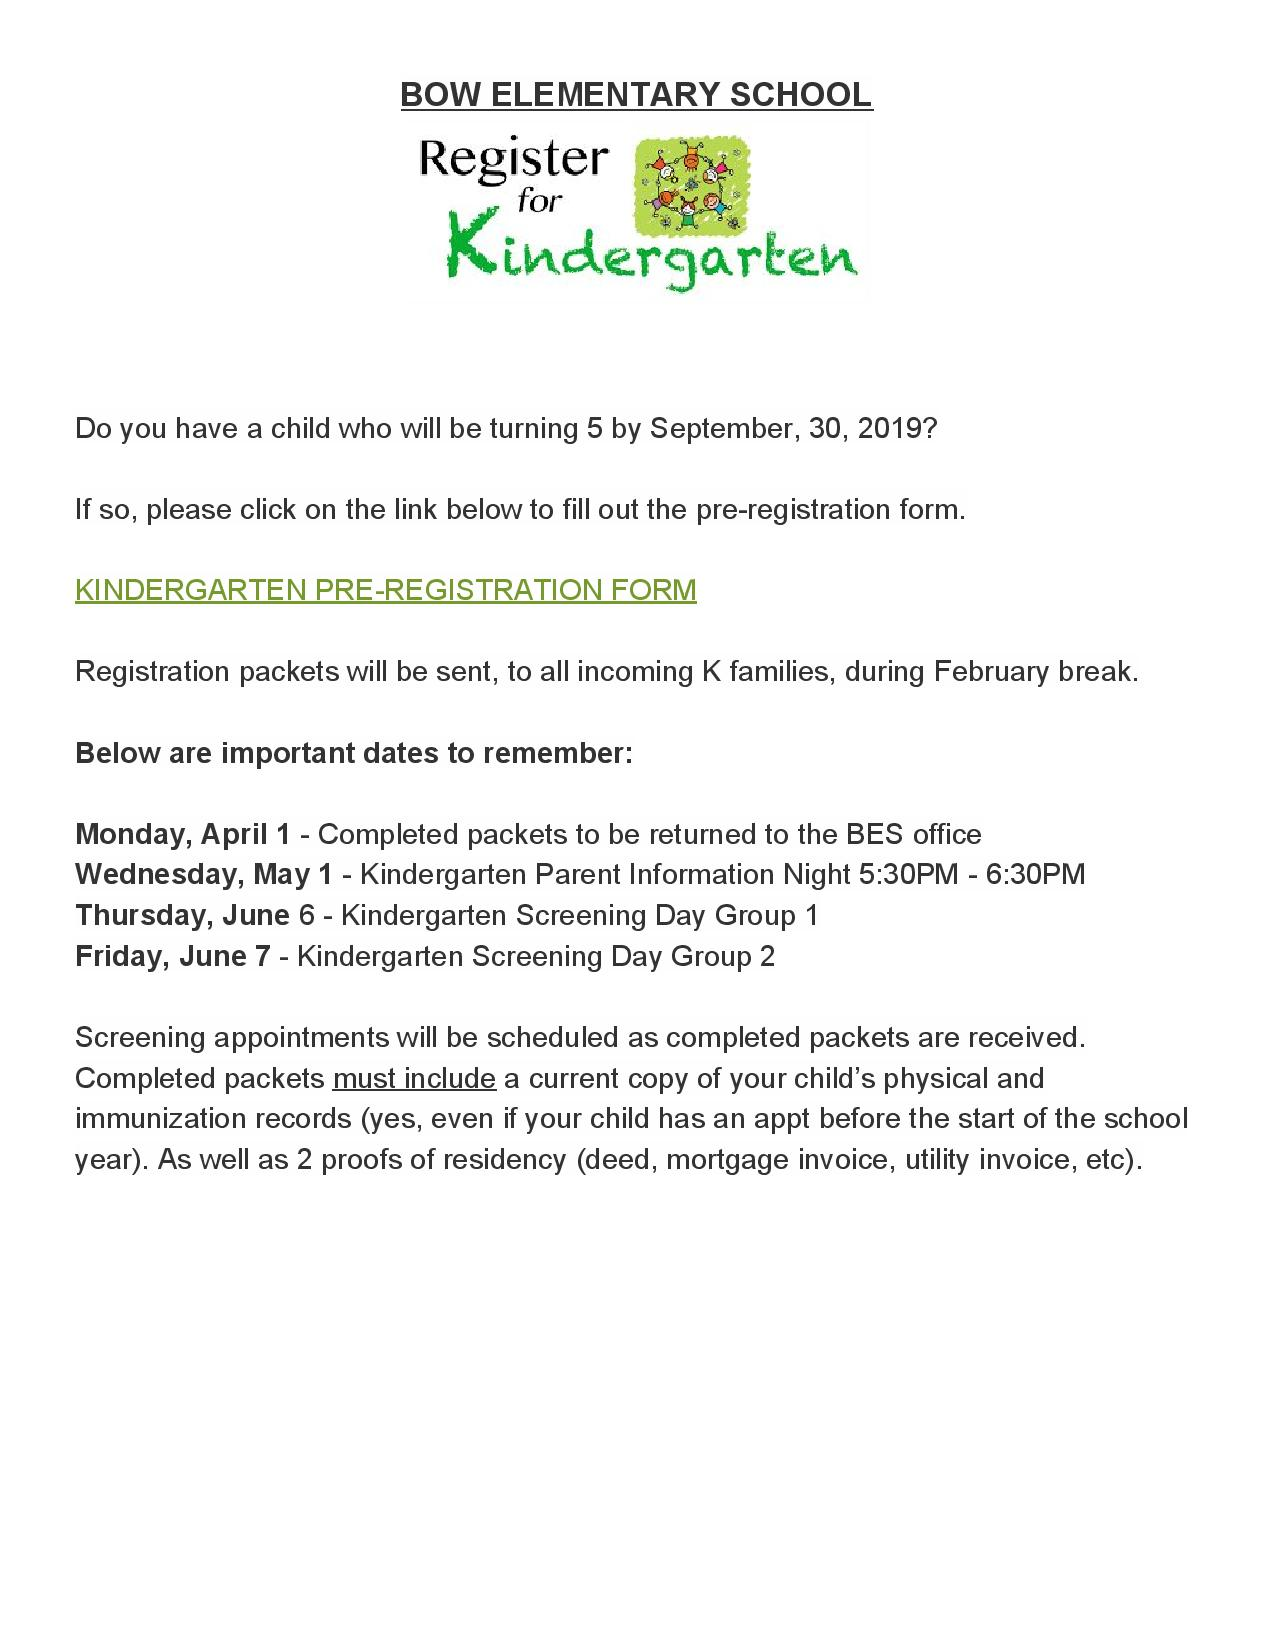 2019 Bow Elementary School K Pre-Registration_-page-001